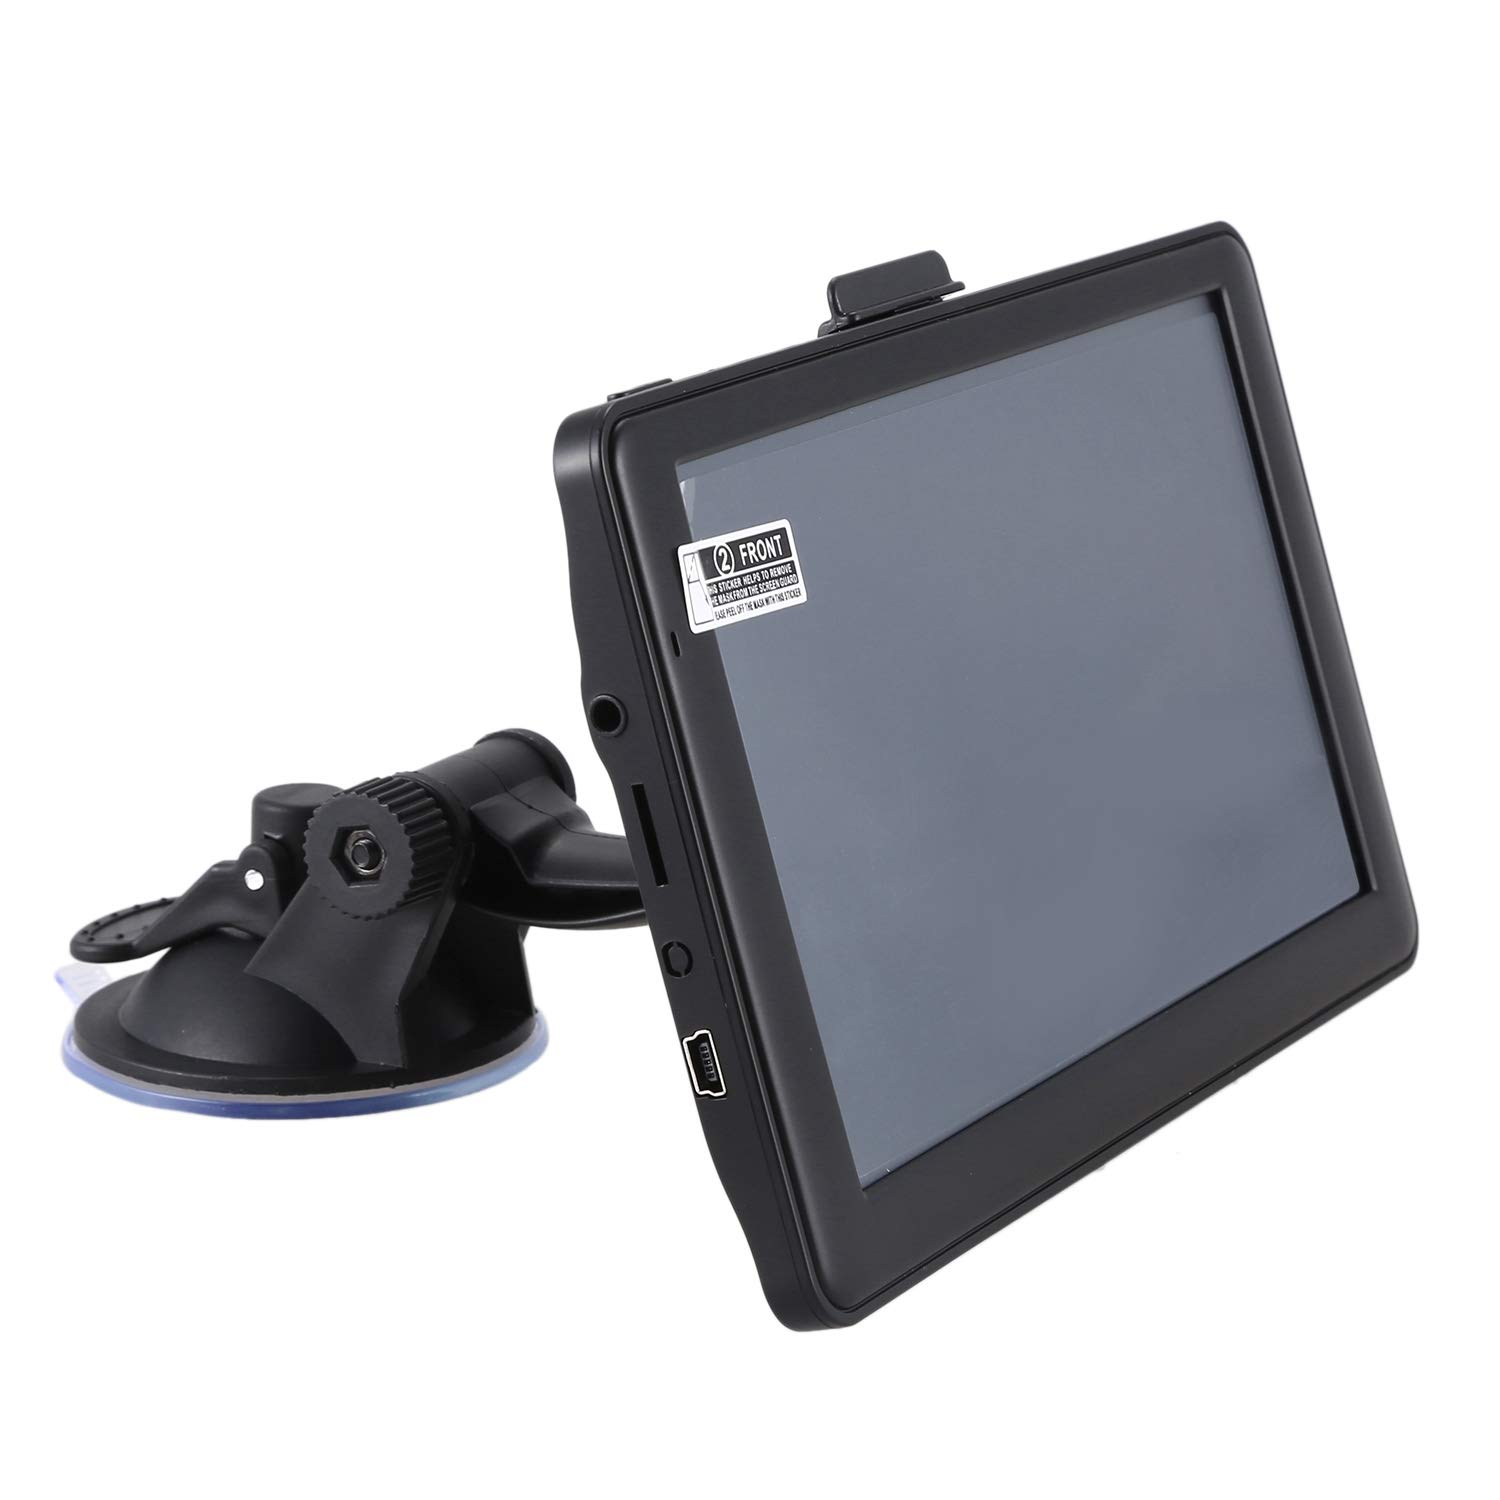 TOOGOO 7 Inches 8GB,800MHZ GPS Navigation with Capacitive Touchscreen Preloaded UK /& EU Maps